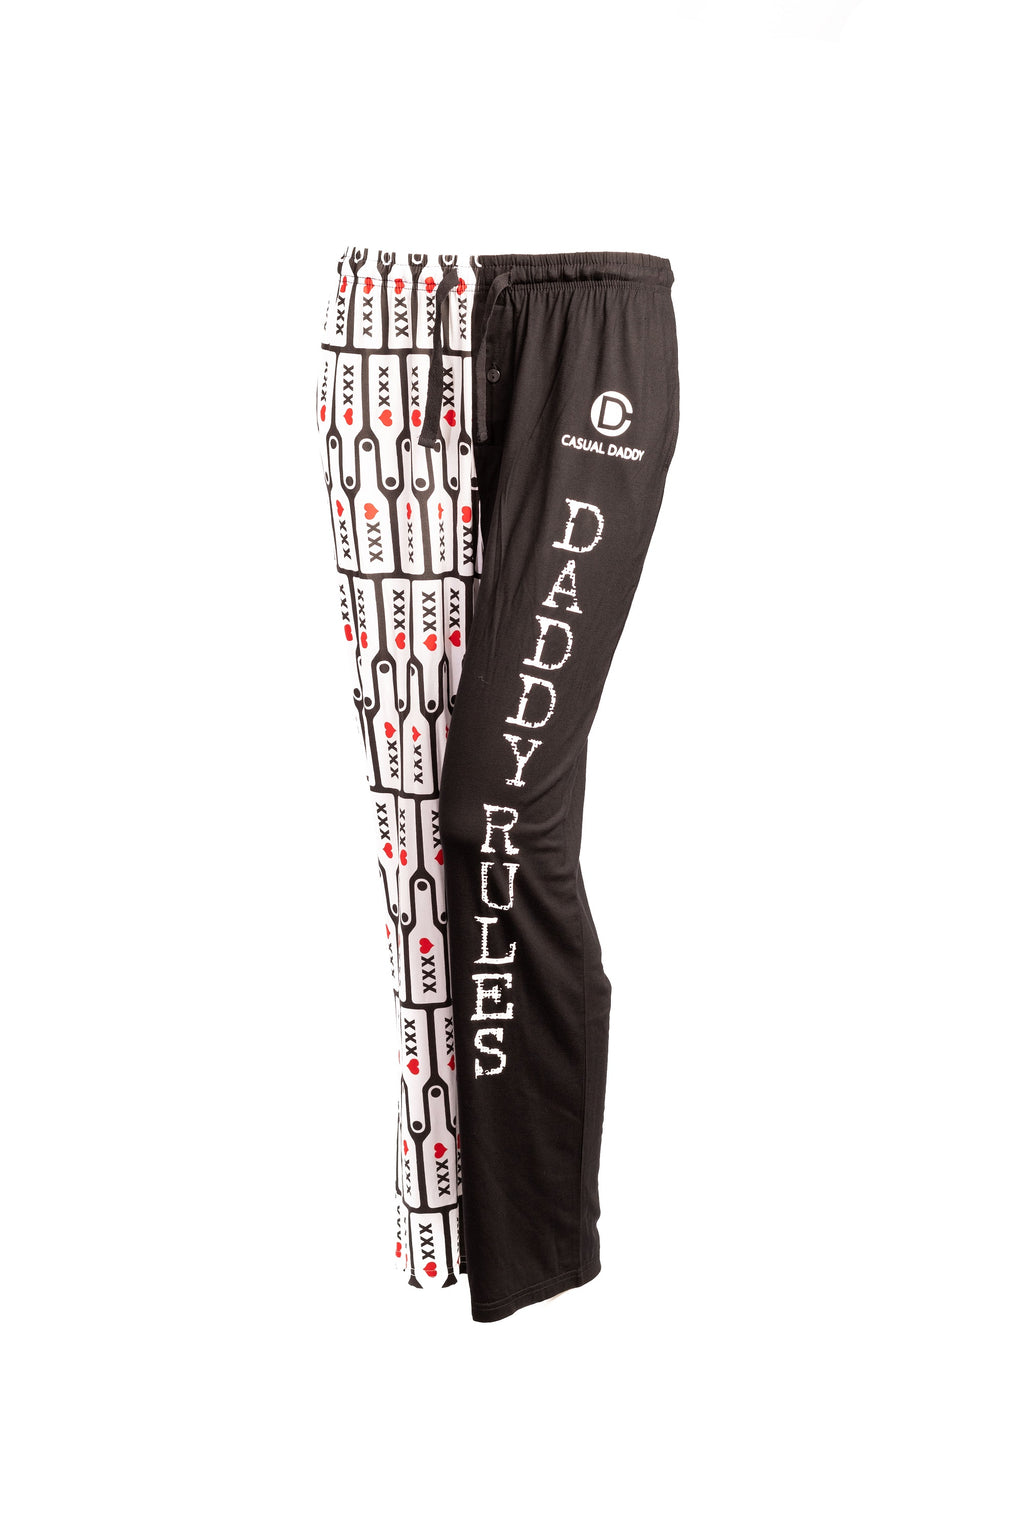 Mens Pajama Bottoms with Pockets by Casual Daddy- Daddy Rules - Casual Daddy